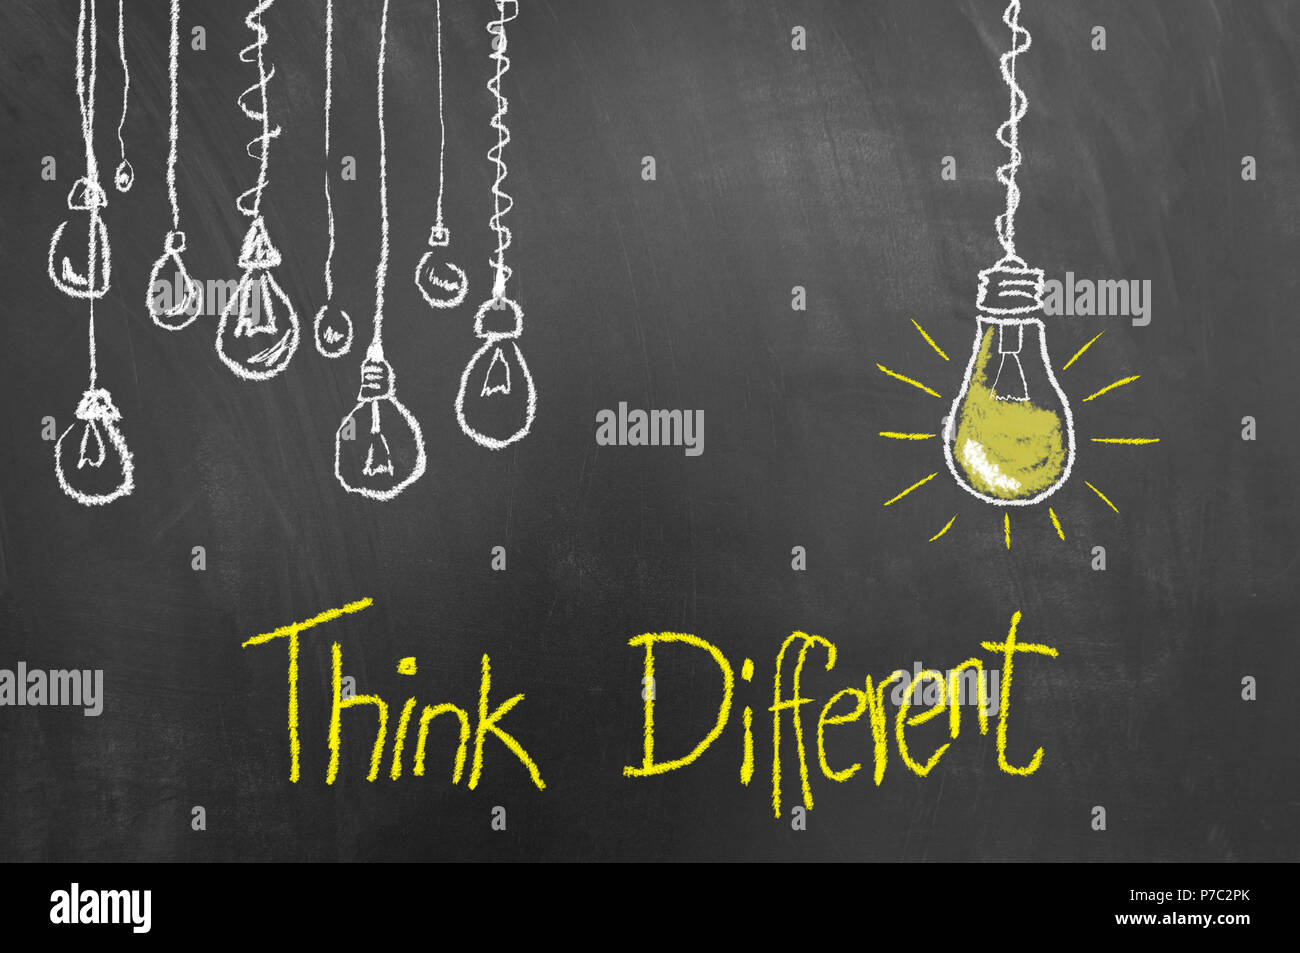 Think different concept with light bulbs drawing and text on chalkboard or blackboard as innovation creativity new vision concept - Stock Image